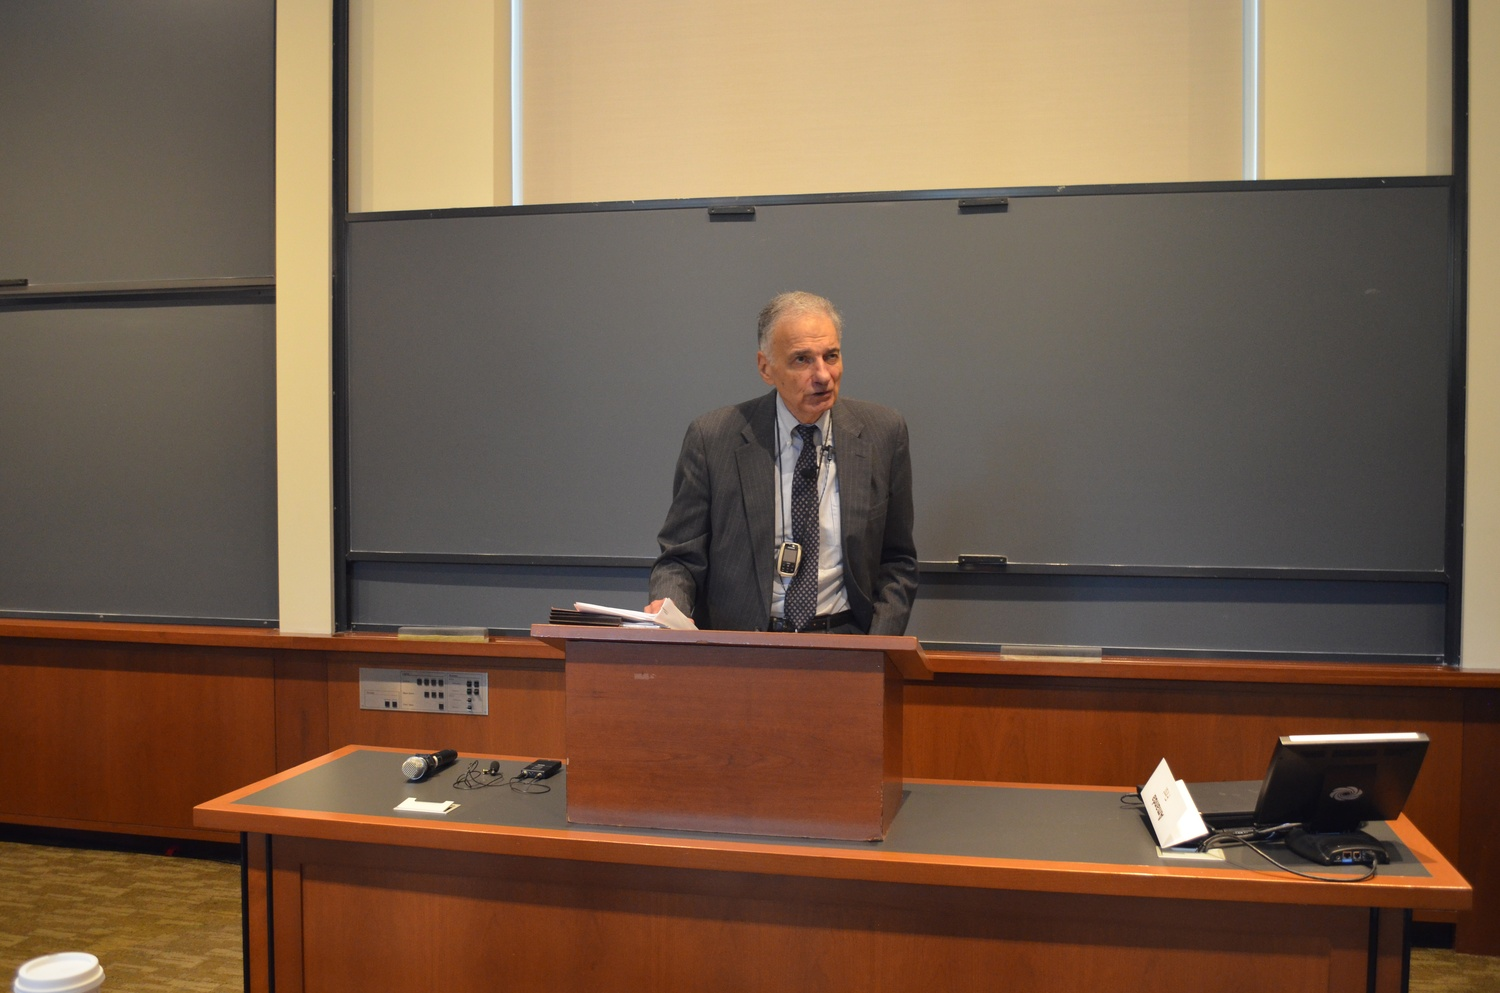 Ralph Nader JD '58 speaks about his experiences at Harvard Law School Thursday Afternoon in Langdell Hall. Nader spoke about among other things, how HLS should change its curriculum to adapt to the changing world.